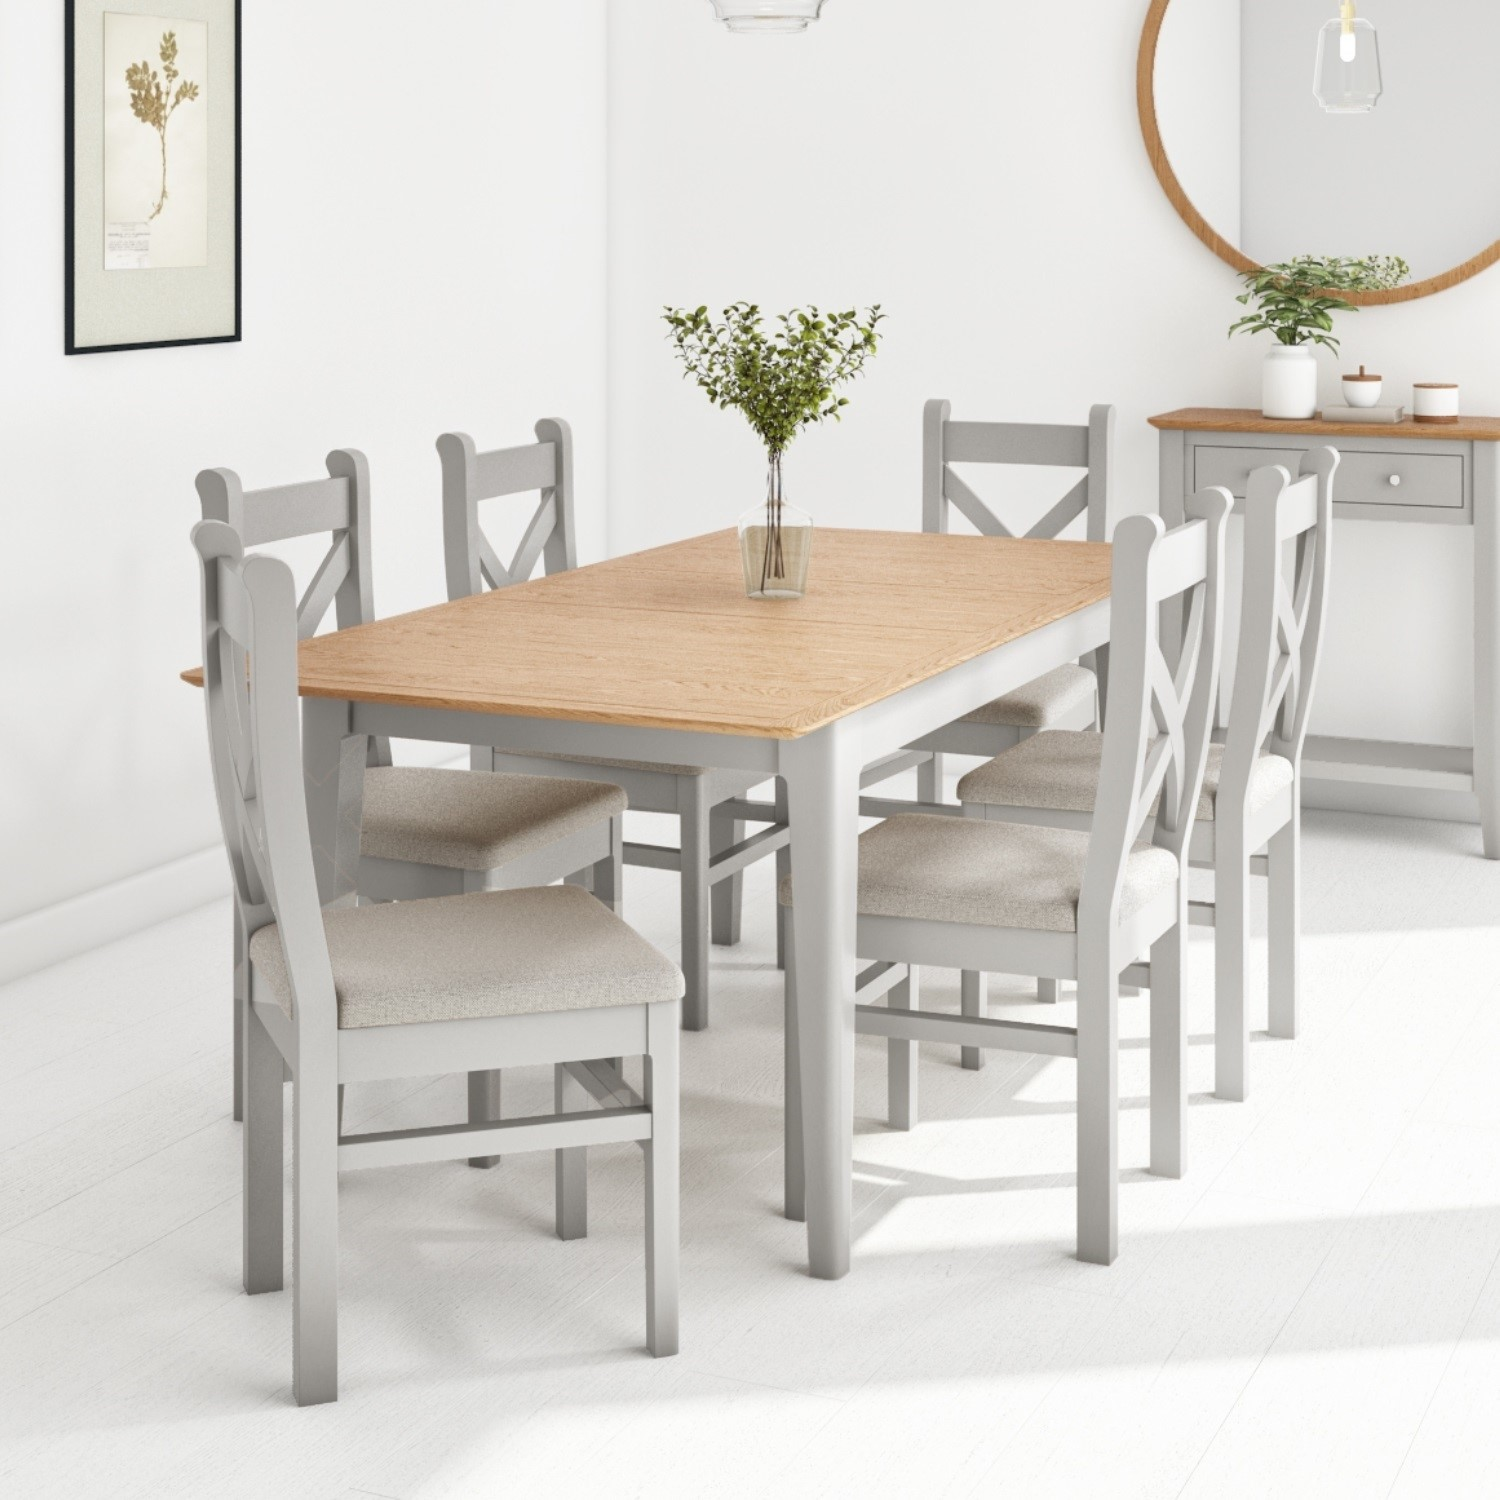 Extendable Dining Table 6 Chairs In Grey Solid Oak Adeline Buyitdirect Ie